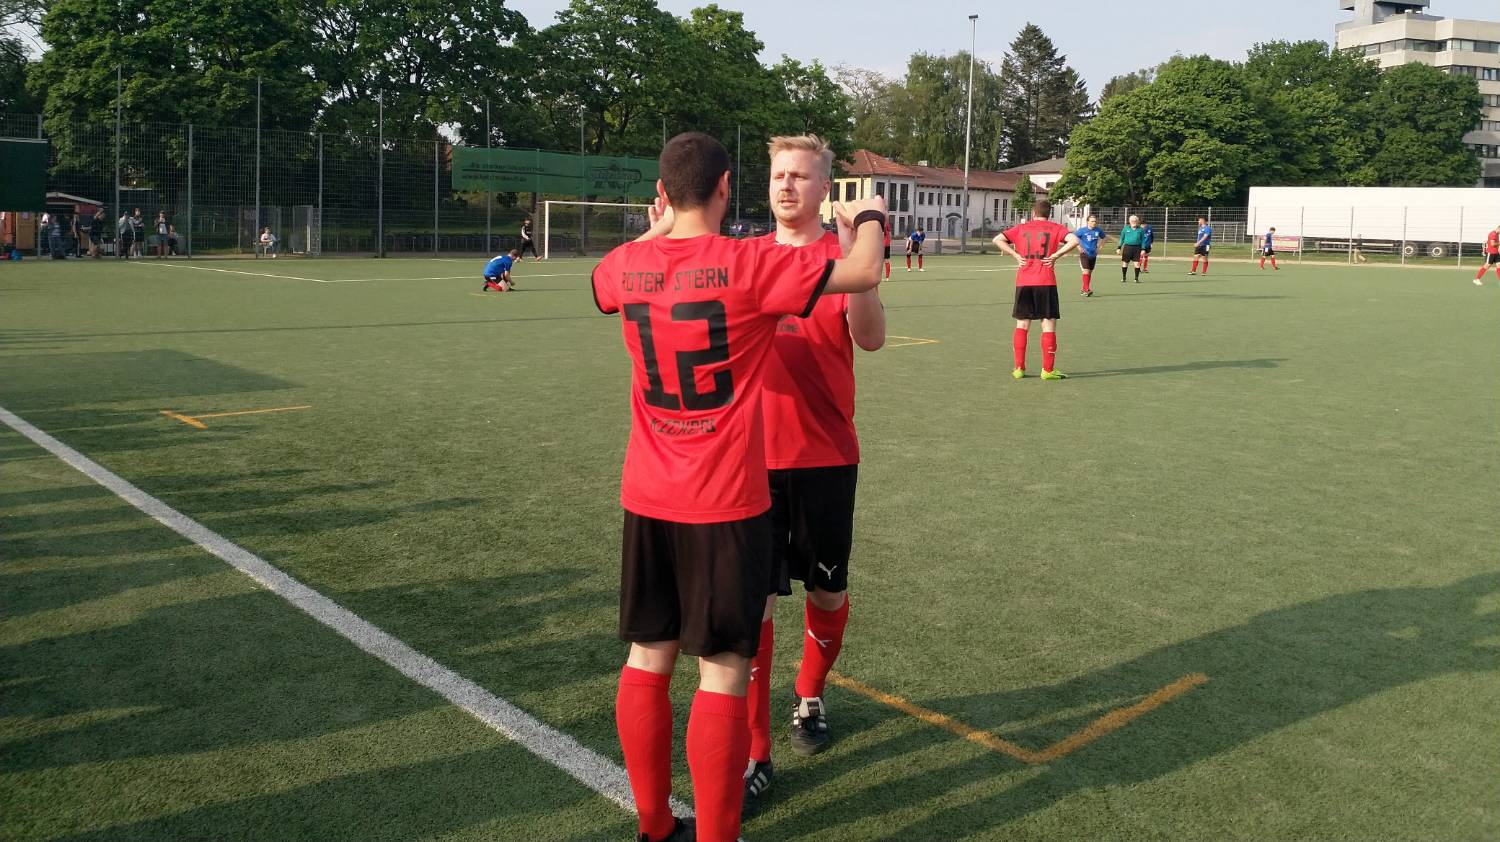 15 Roter Stern Kickers 05 Vs Fc Ahrensburg 2 Auswechslung Effe 05 2018